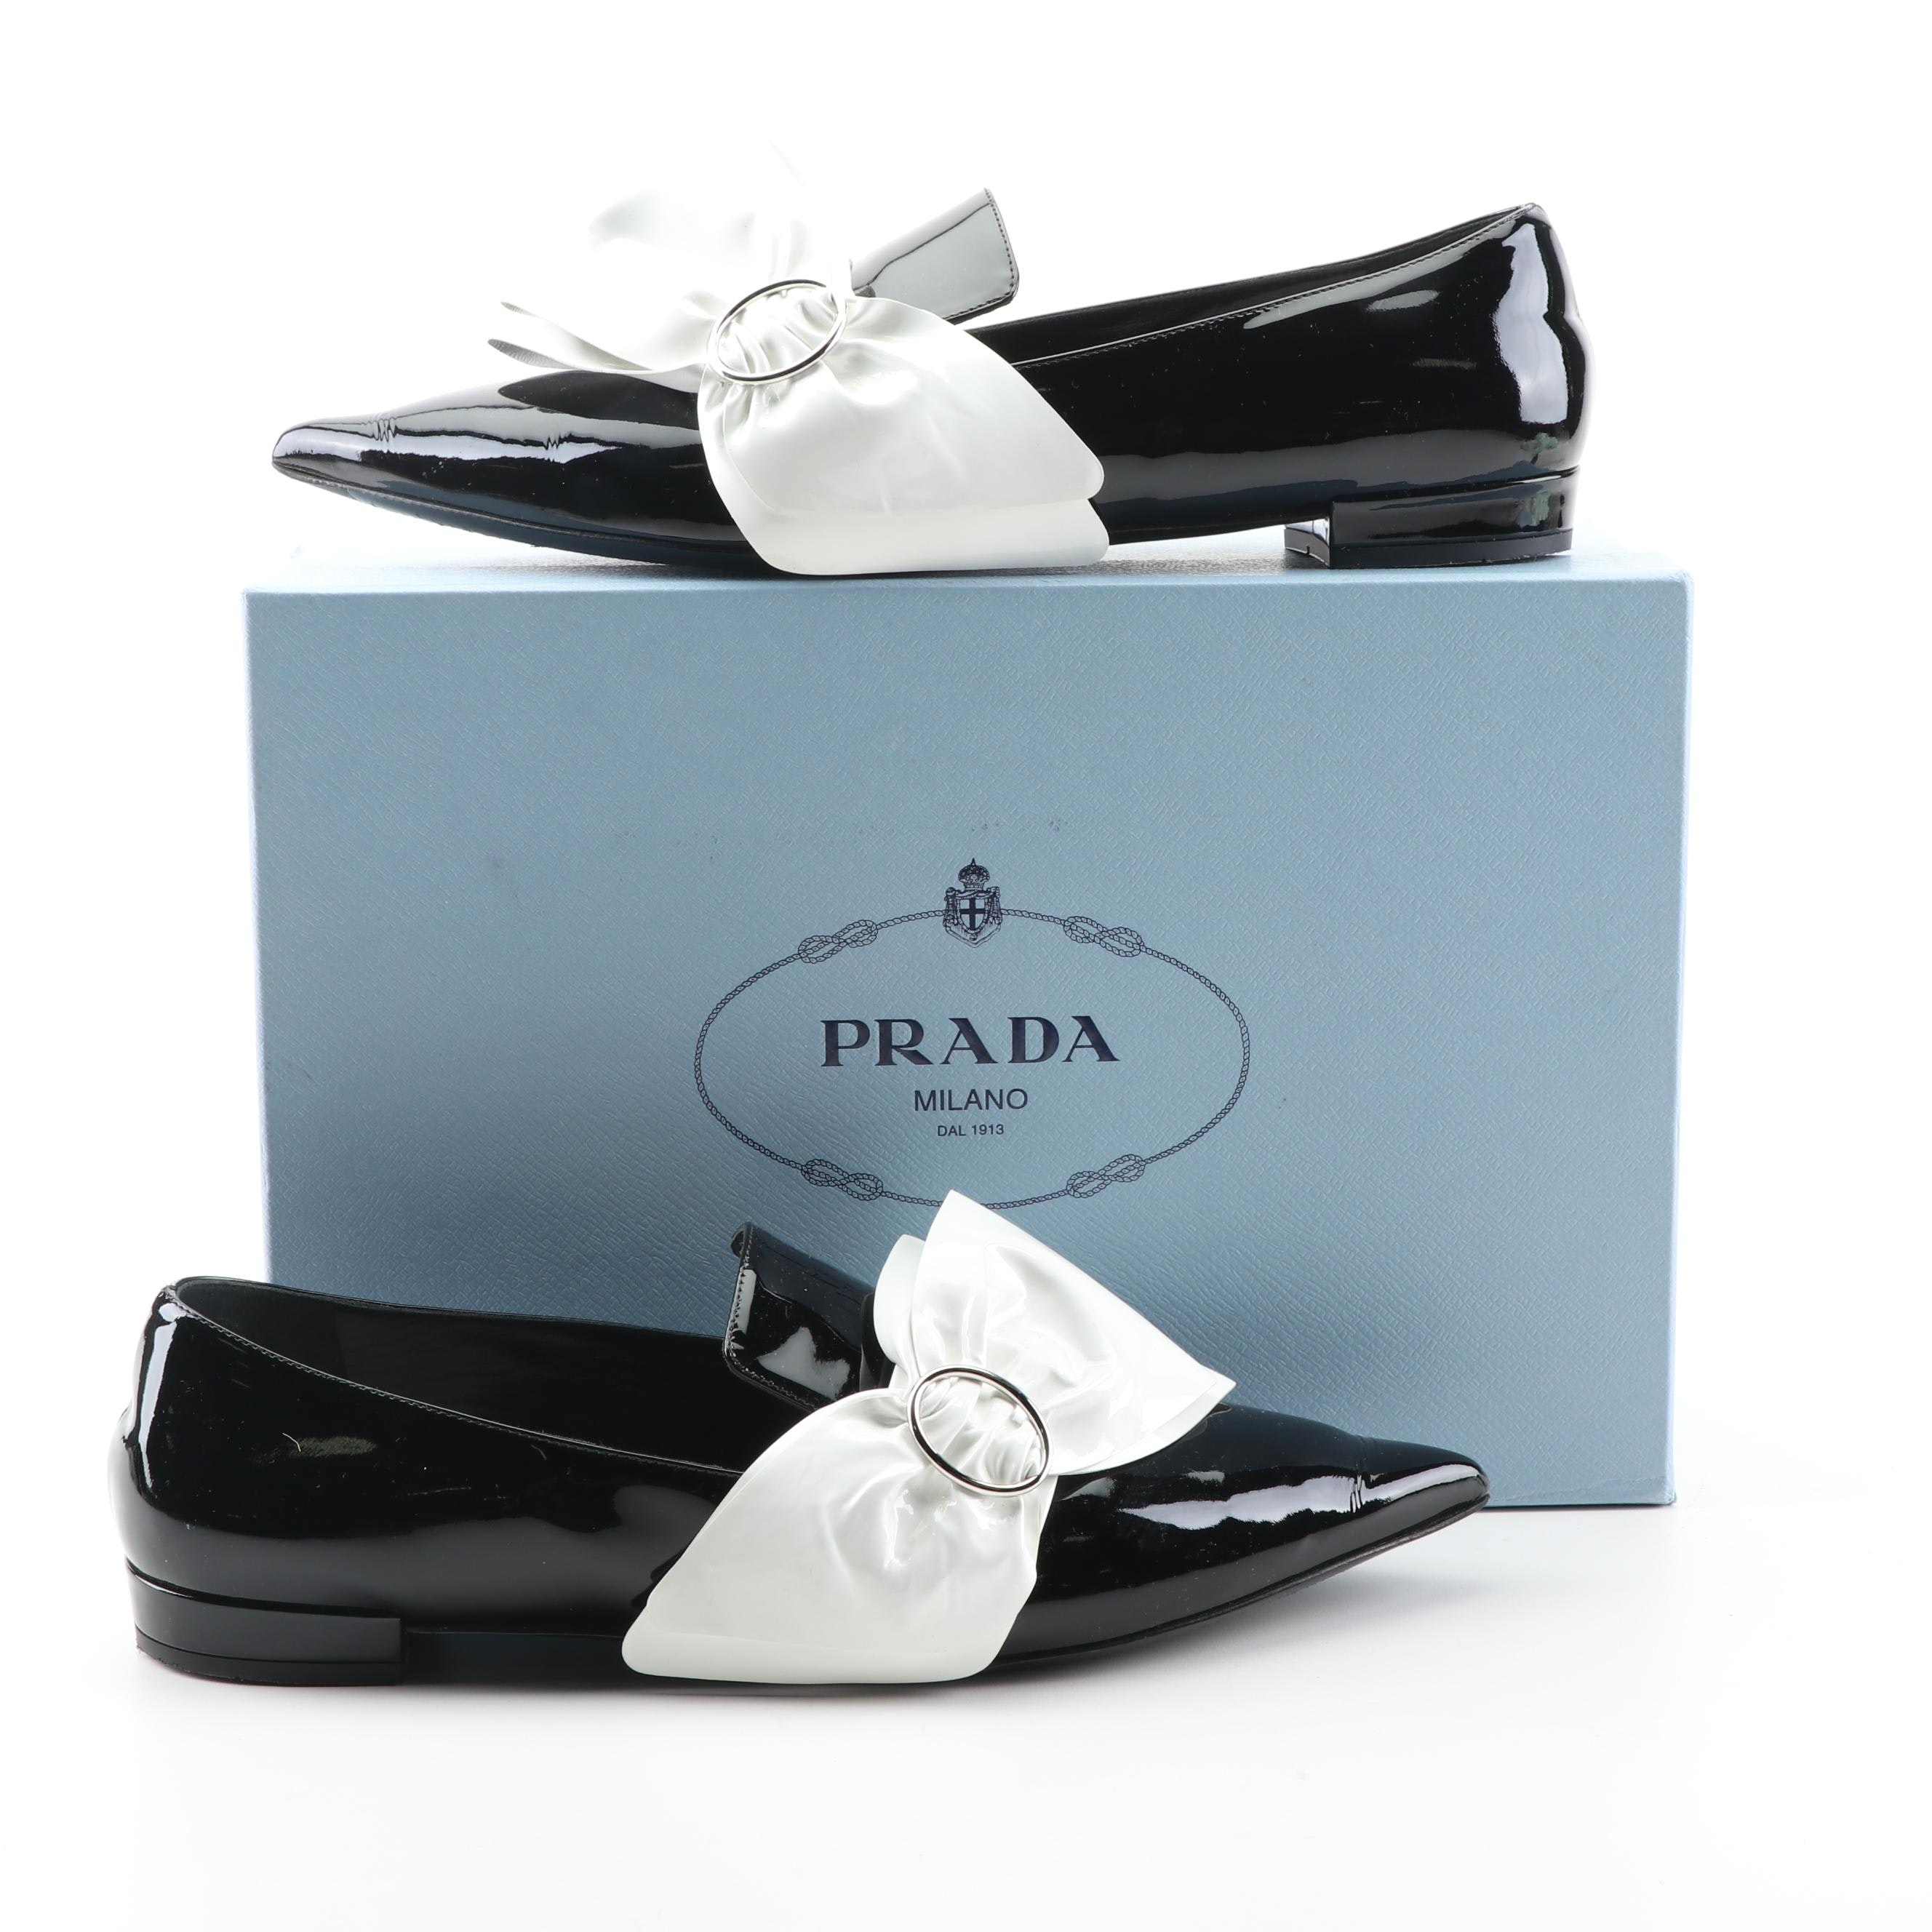 Prada Black Patent Leather Flats with White Oversized Bows